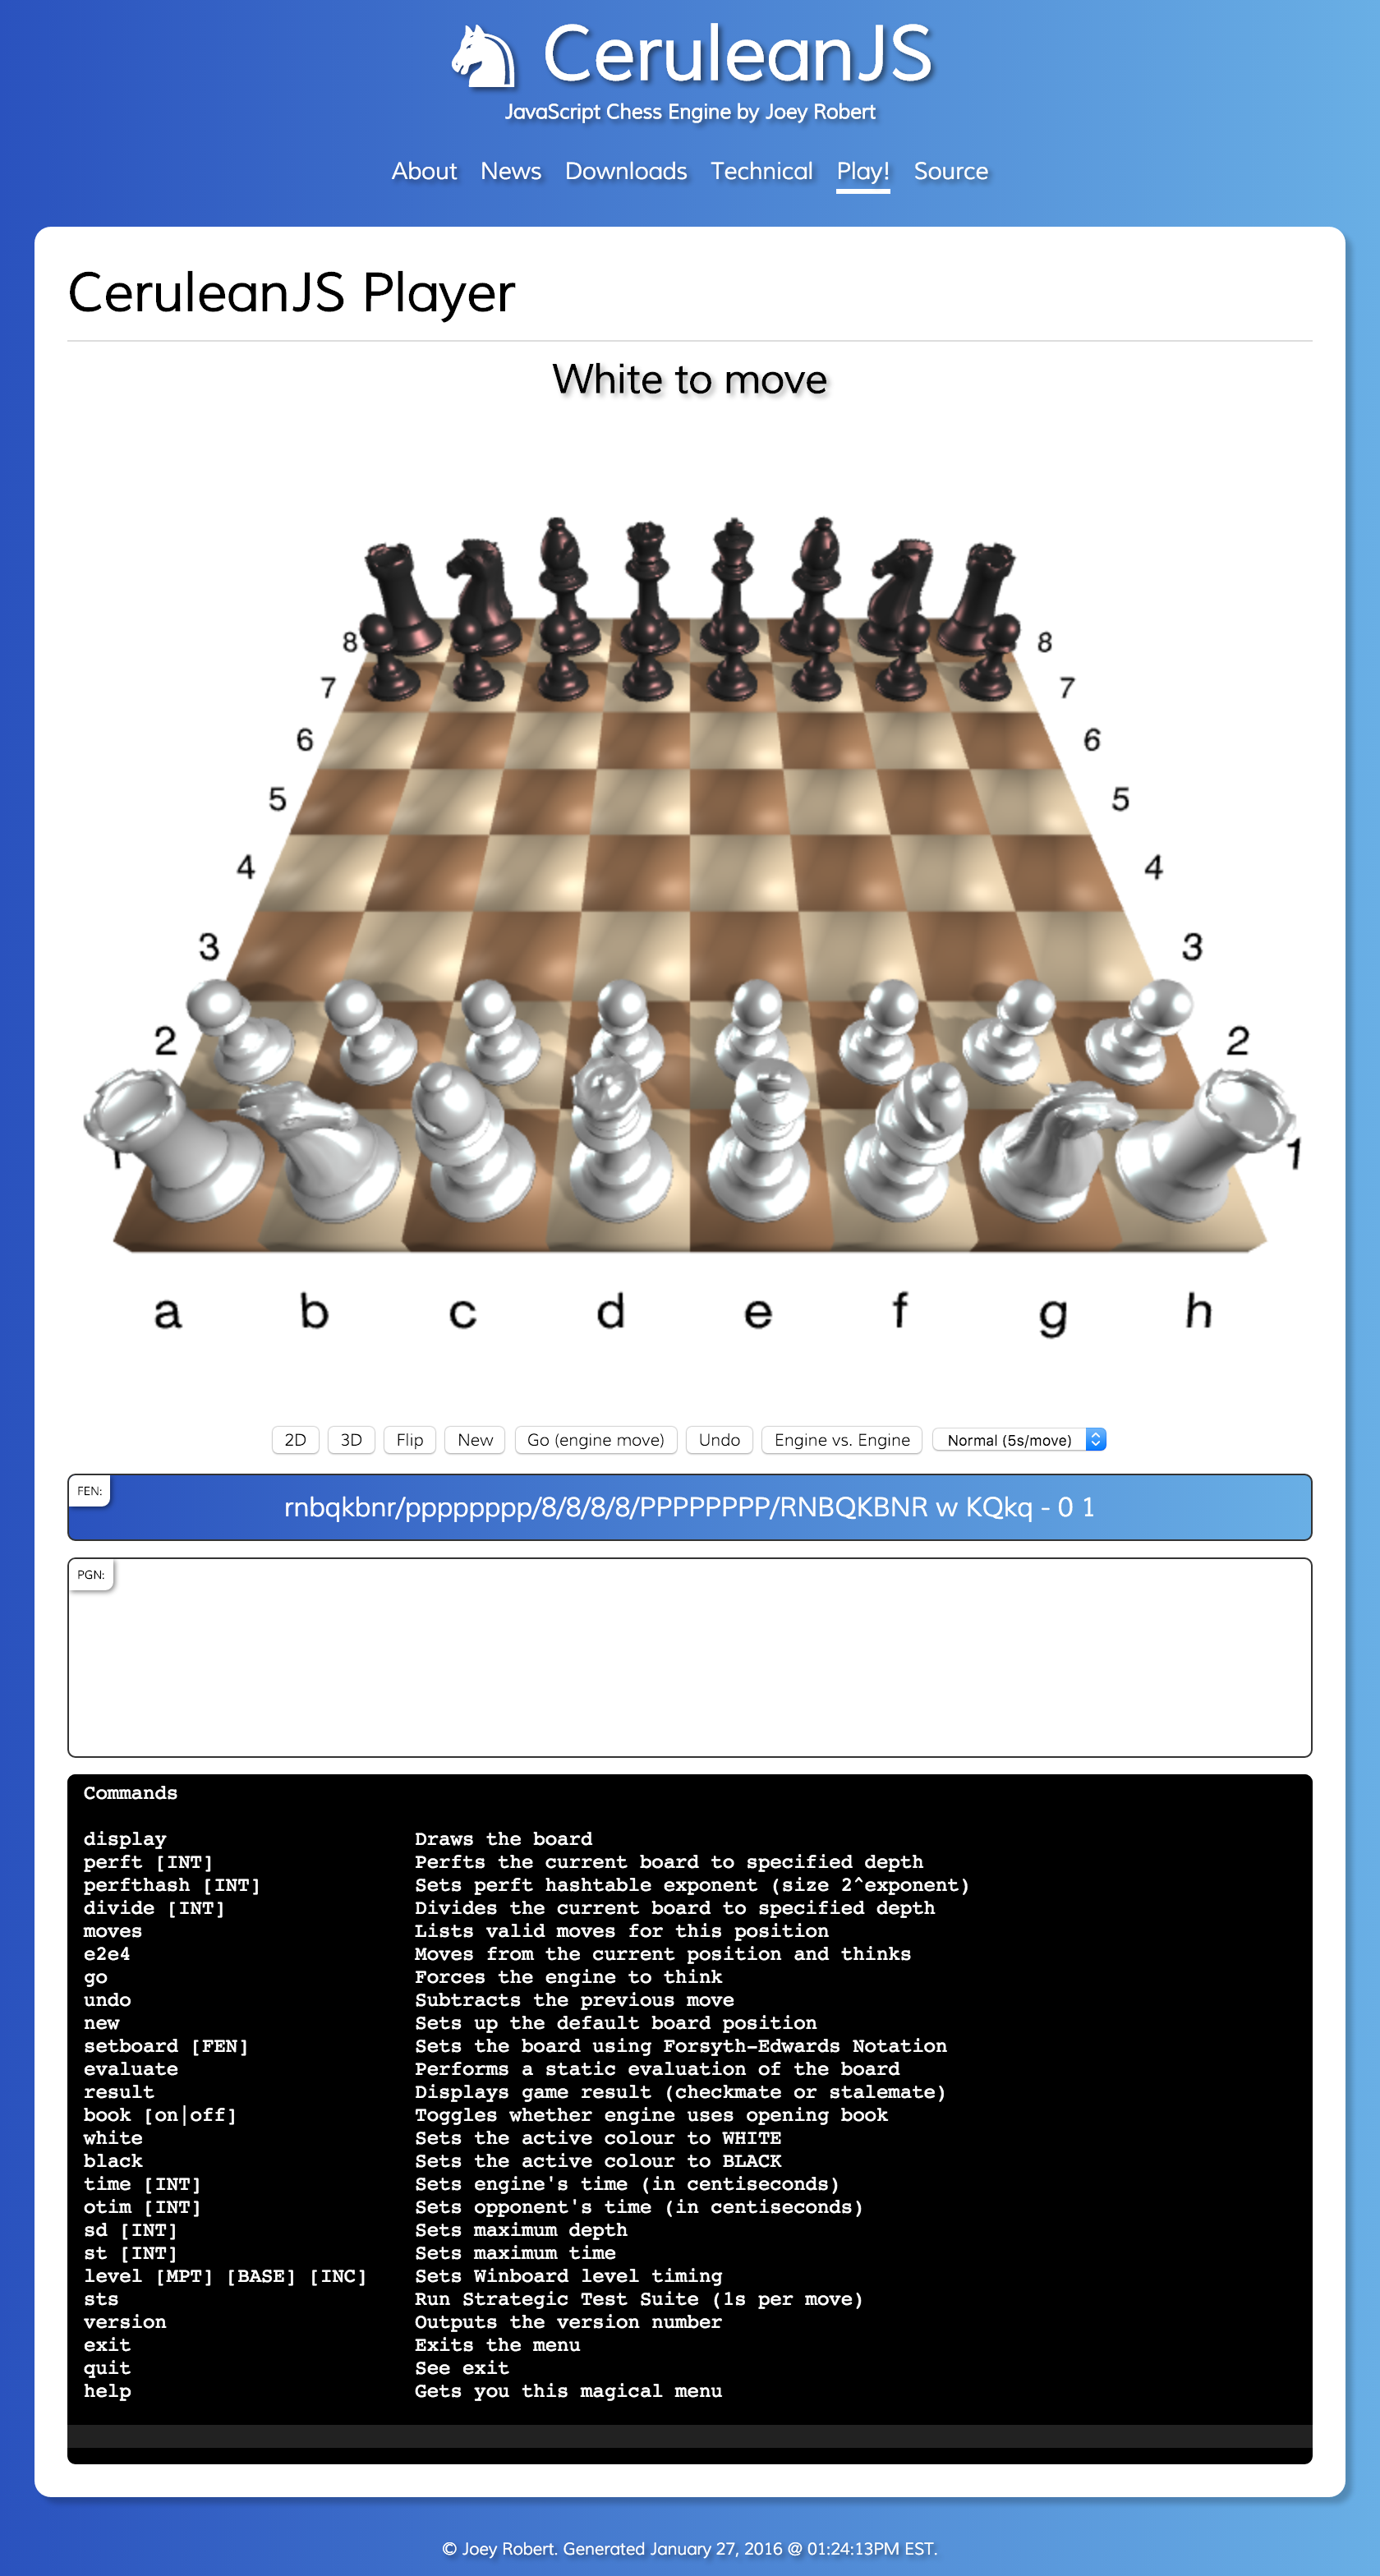 Play CeruleanJS chess online